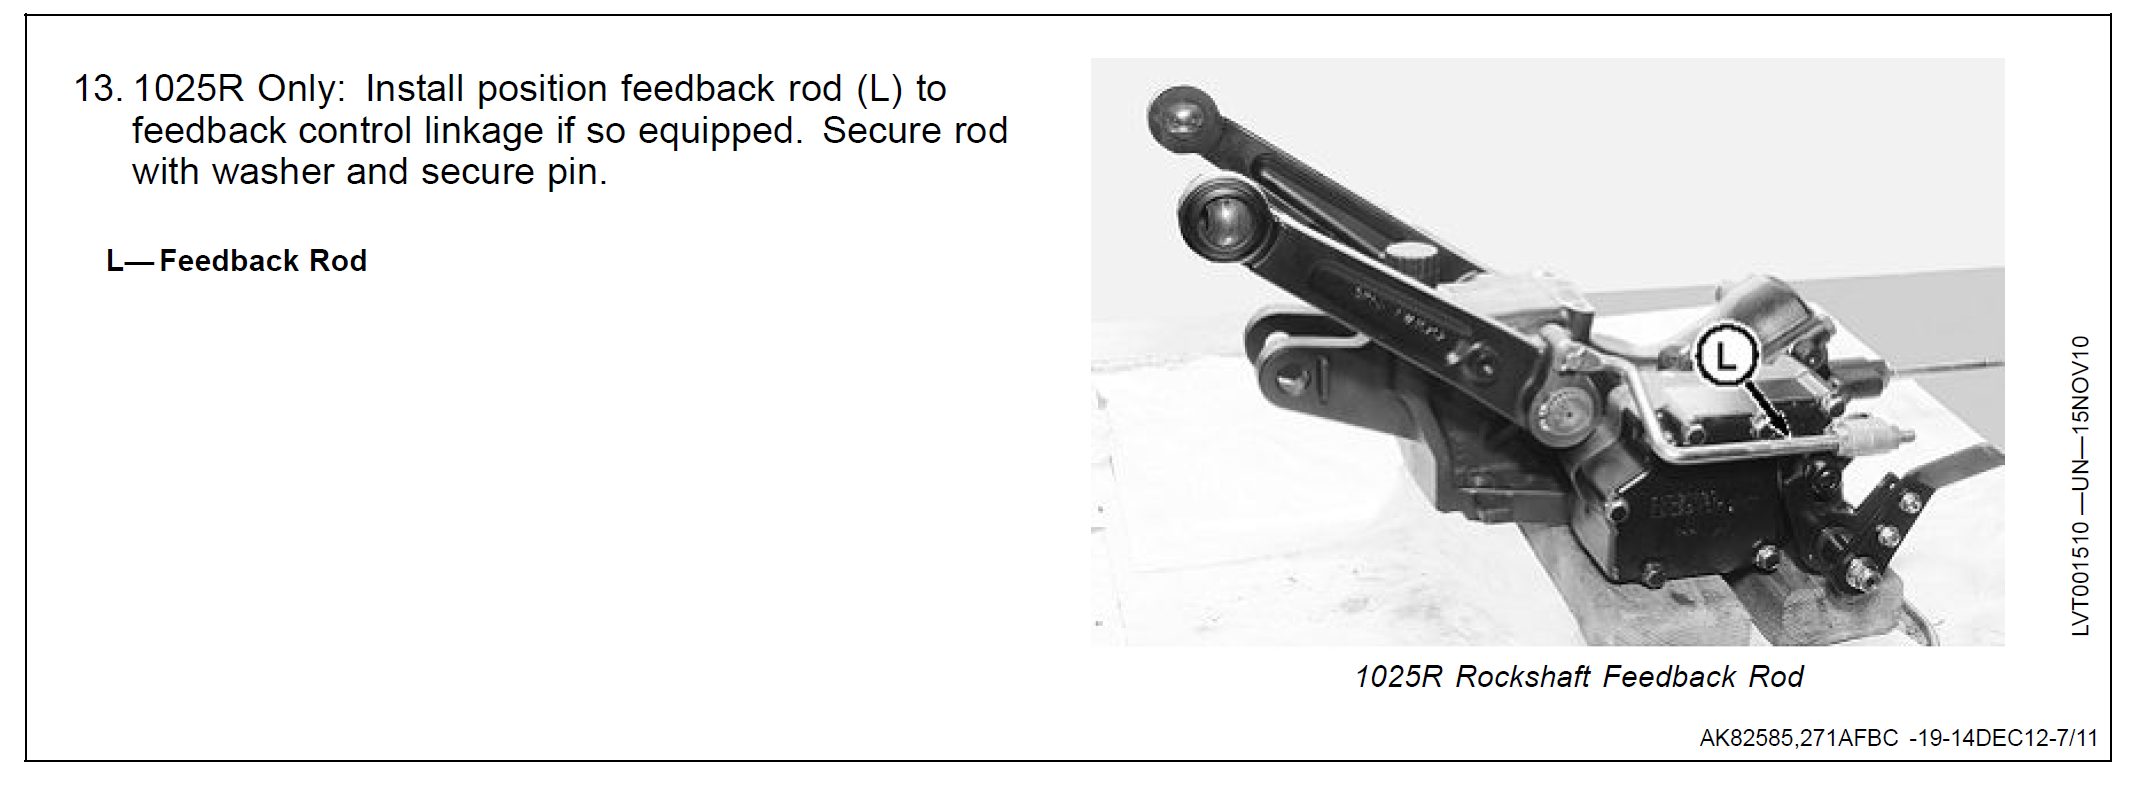 1025R Rockshaft feedback rod.PNG